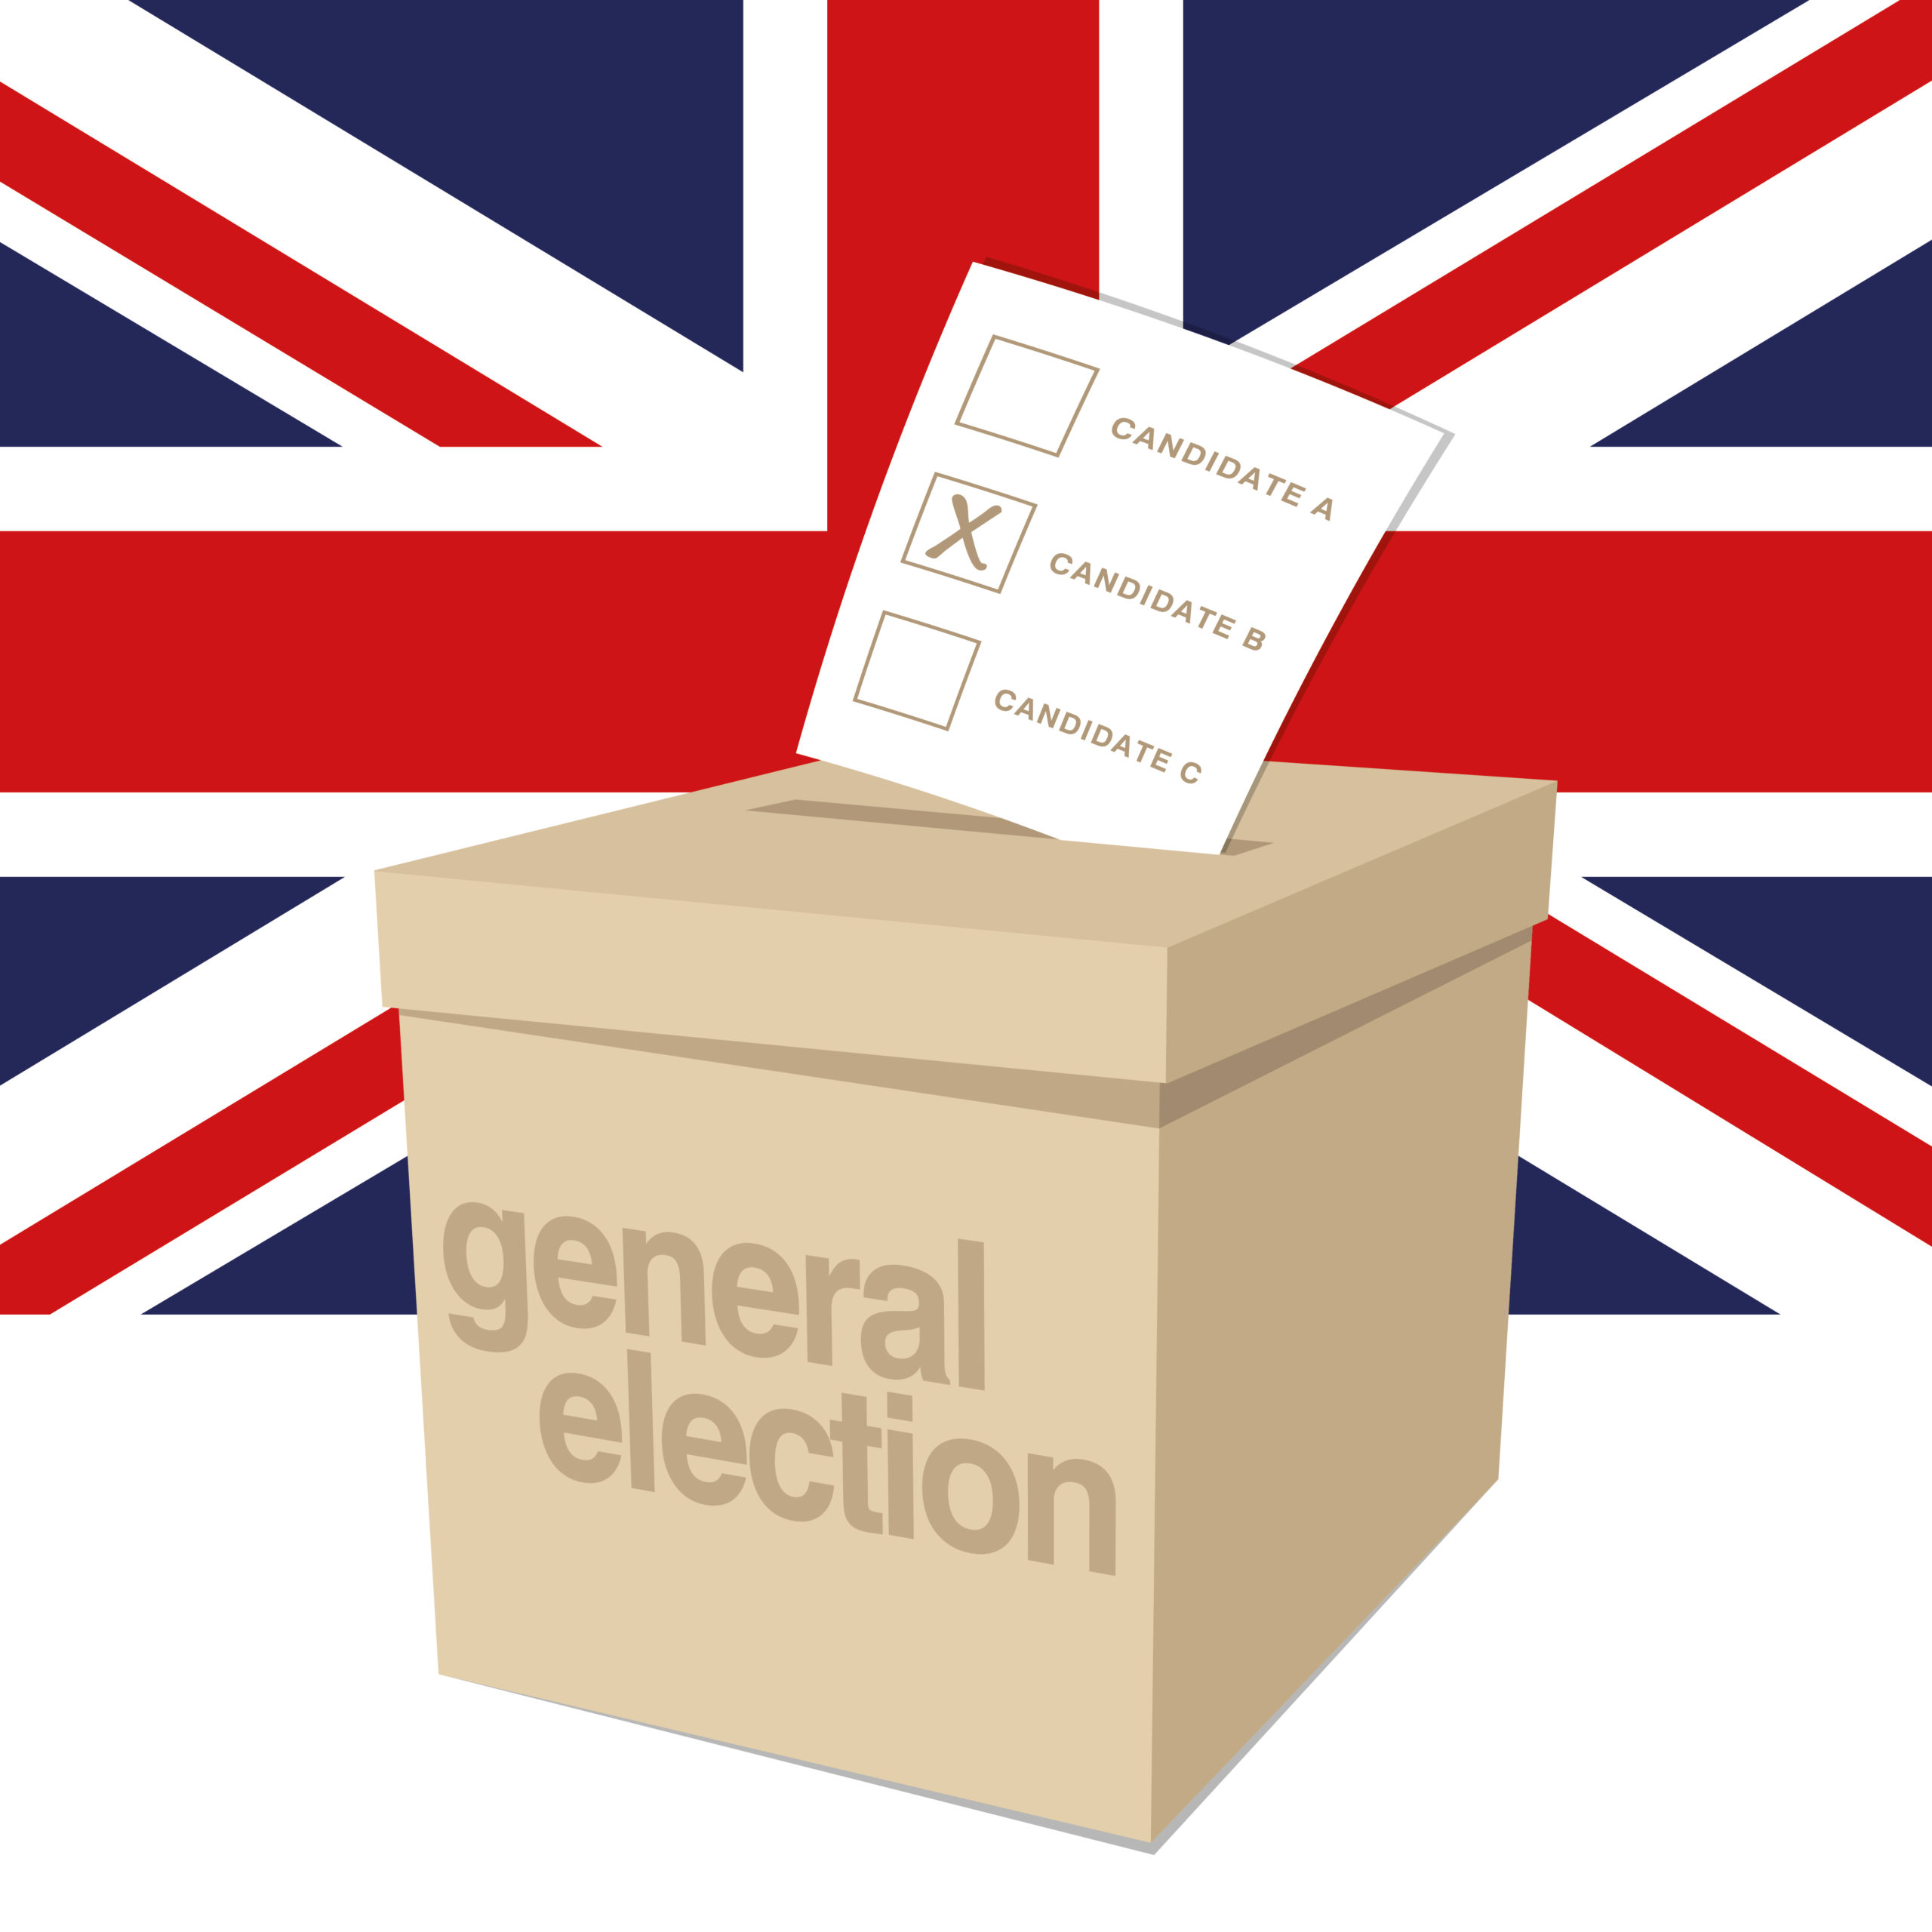 Picture of ballot box in front of a union jack